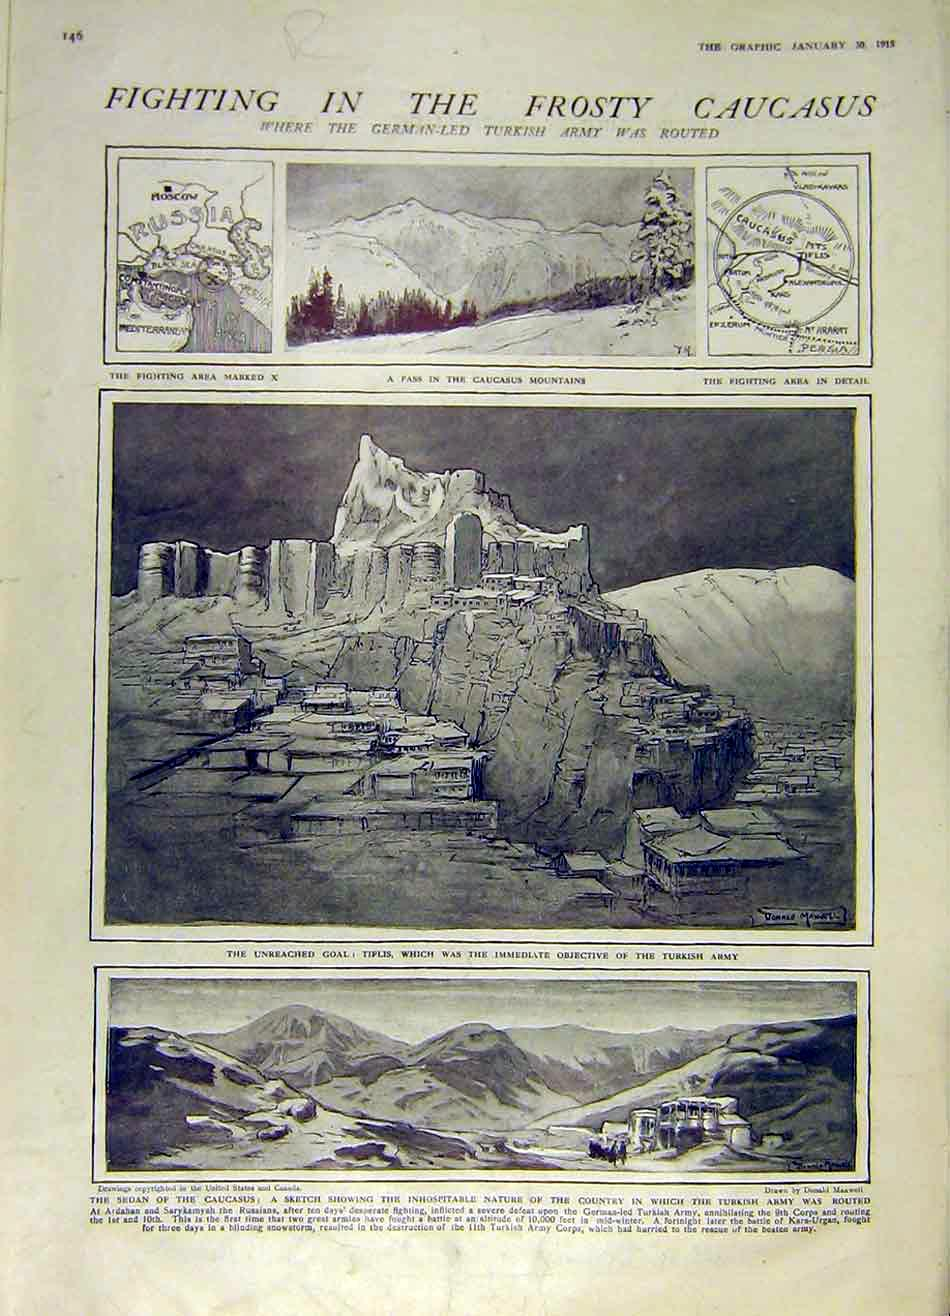 Print Causcasus Mountains Cameroons Sketches Ww1 1915 46Rddd0 Old Original